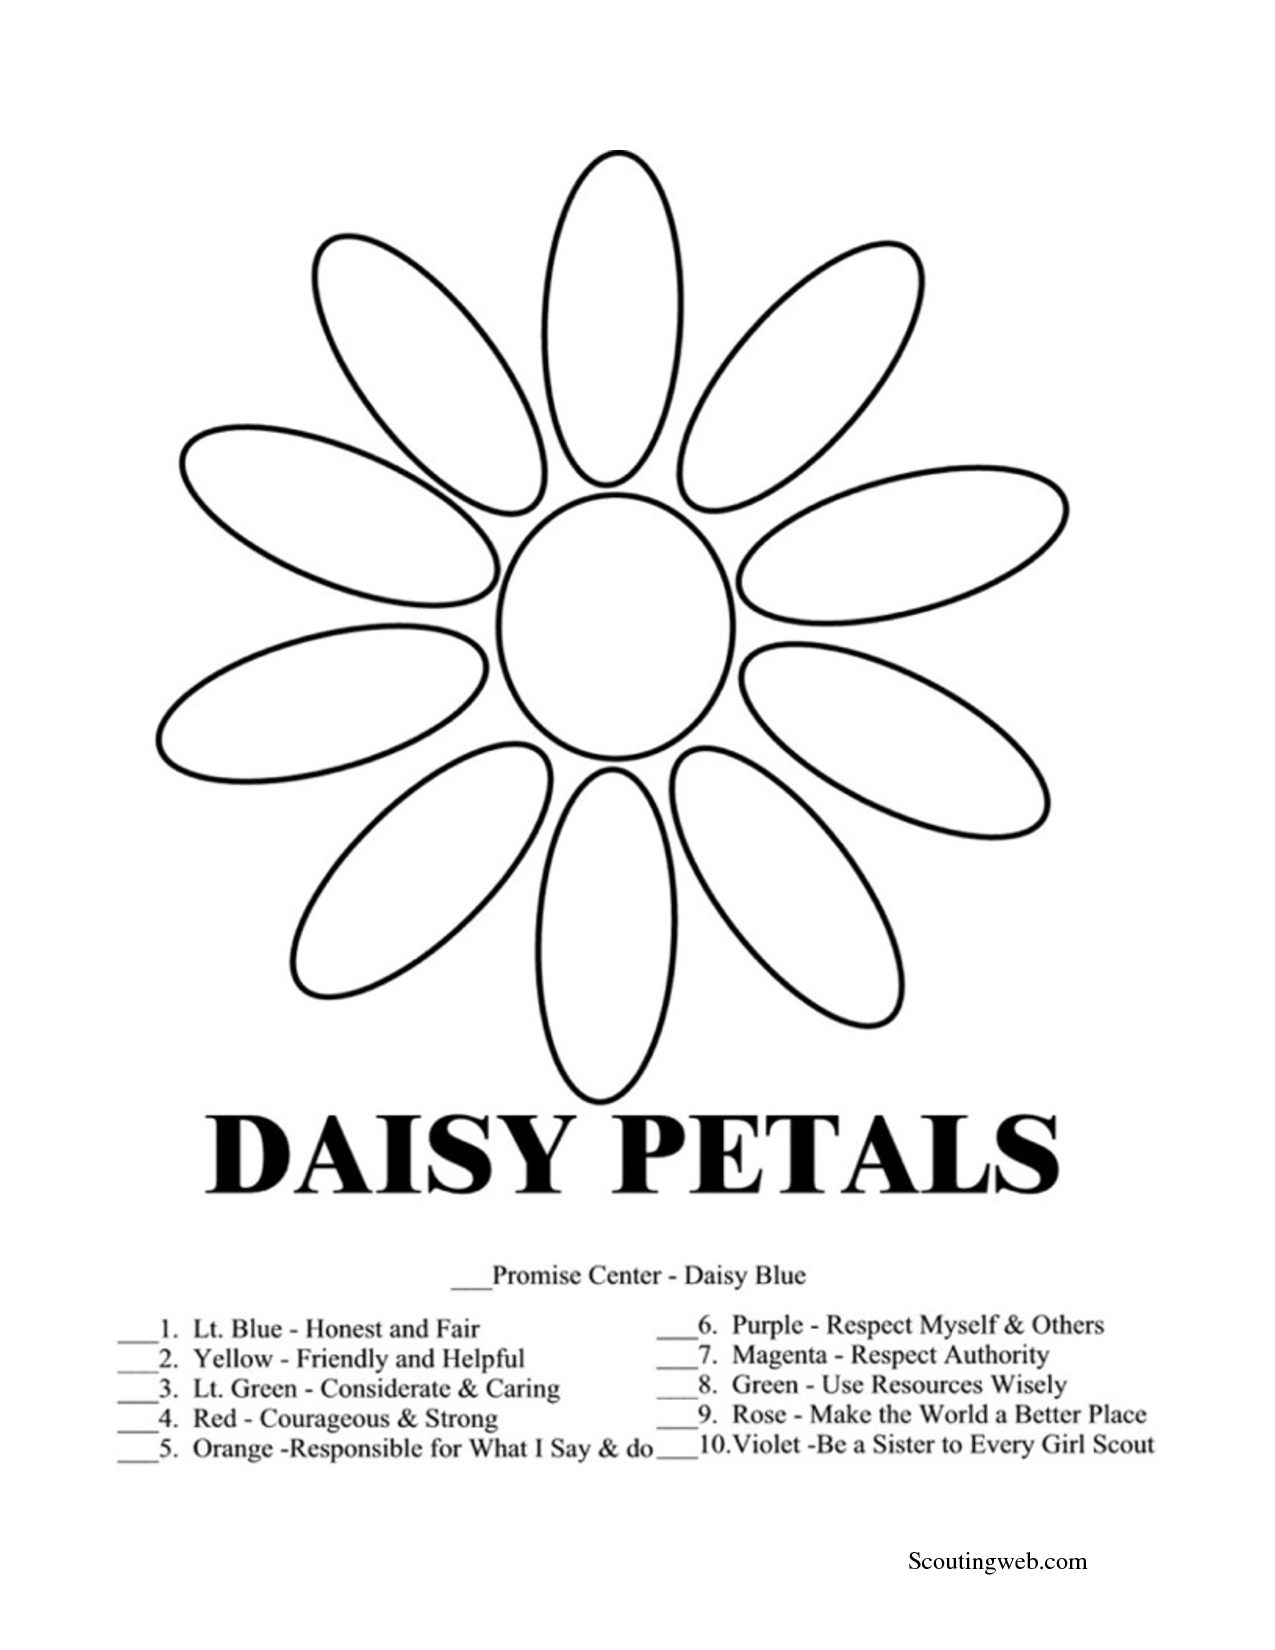 daisy girl scout coloring pages free free printable coloring pages - Free Coloring Pages For Girls